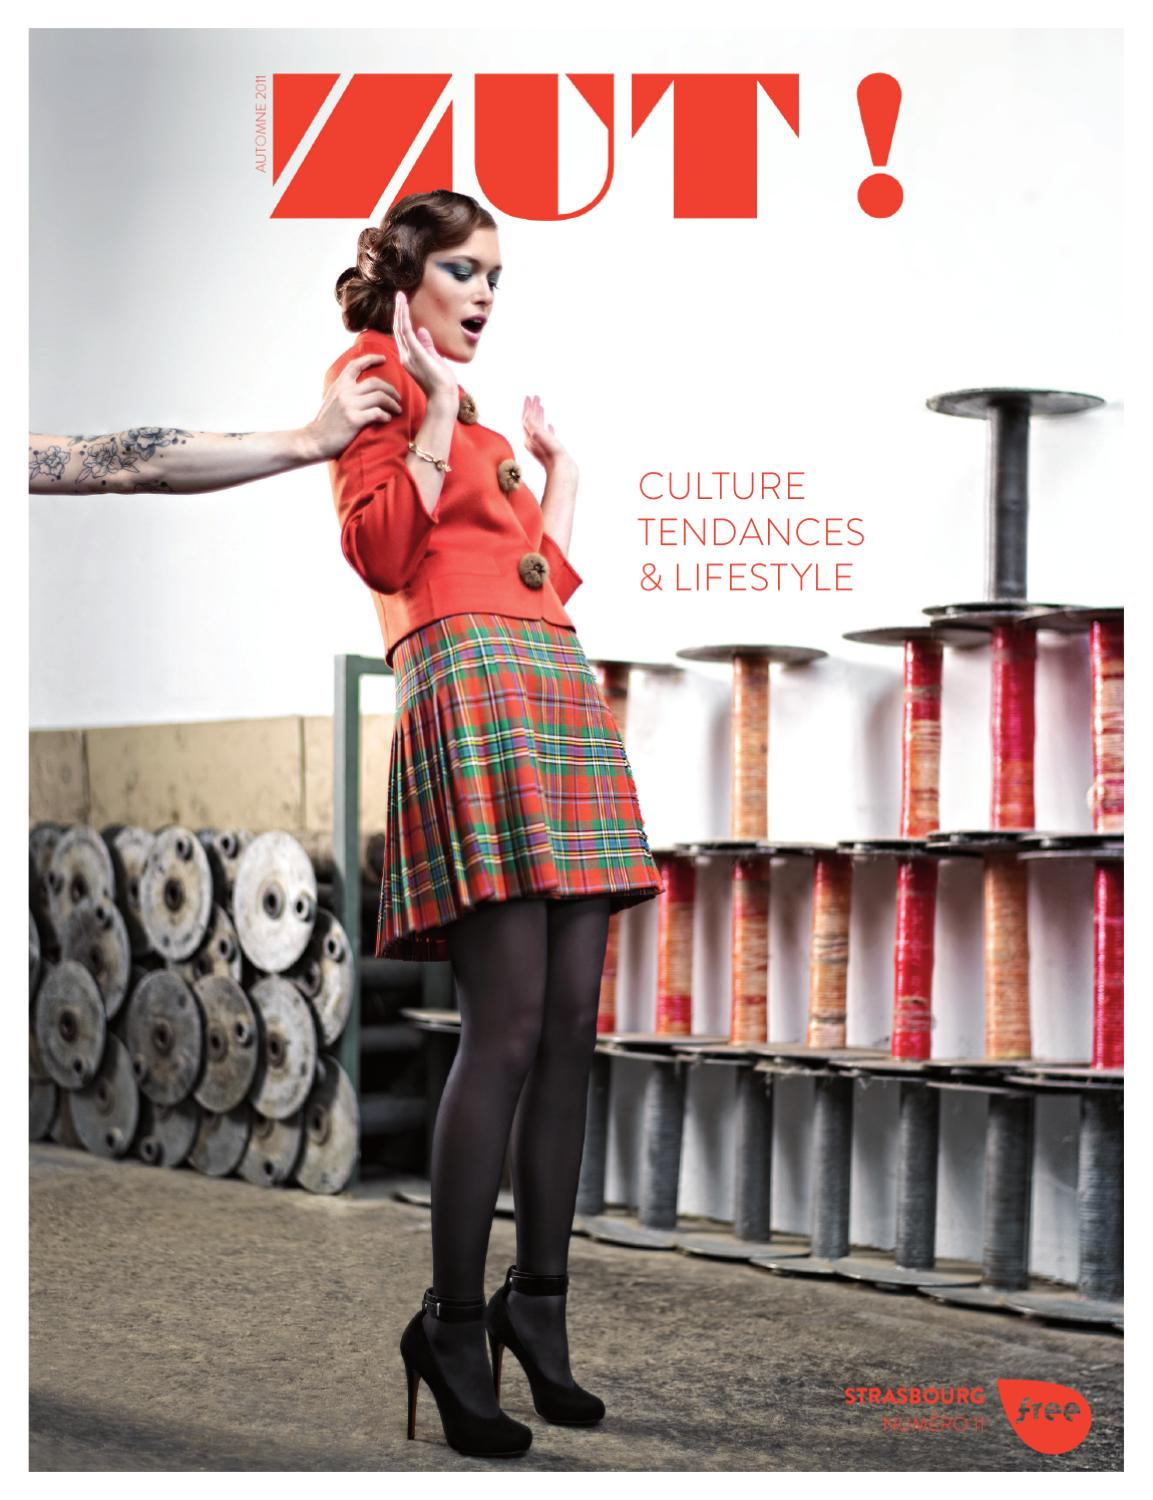 Magazine 11 Zut By Issuu 11 Zut nz6qOzI